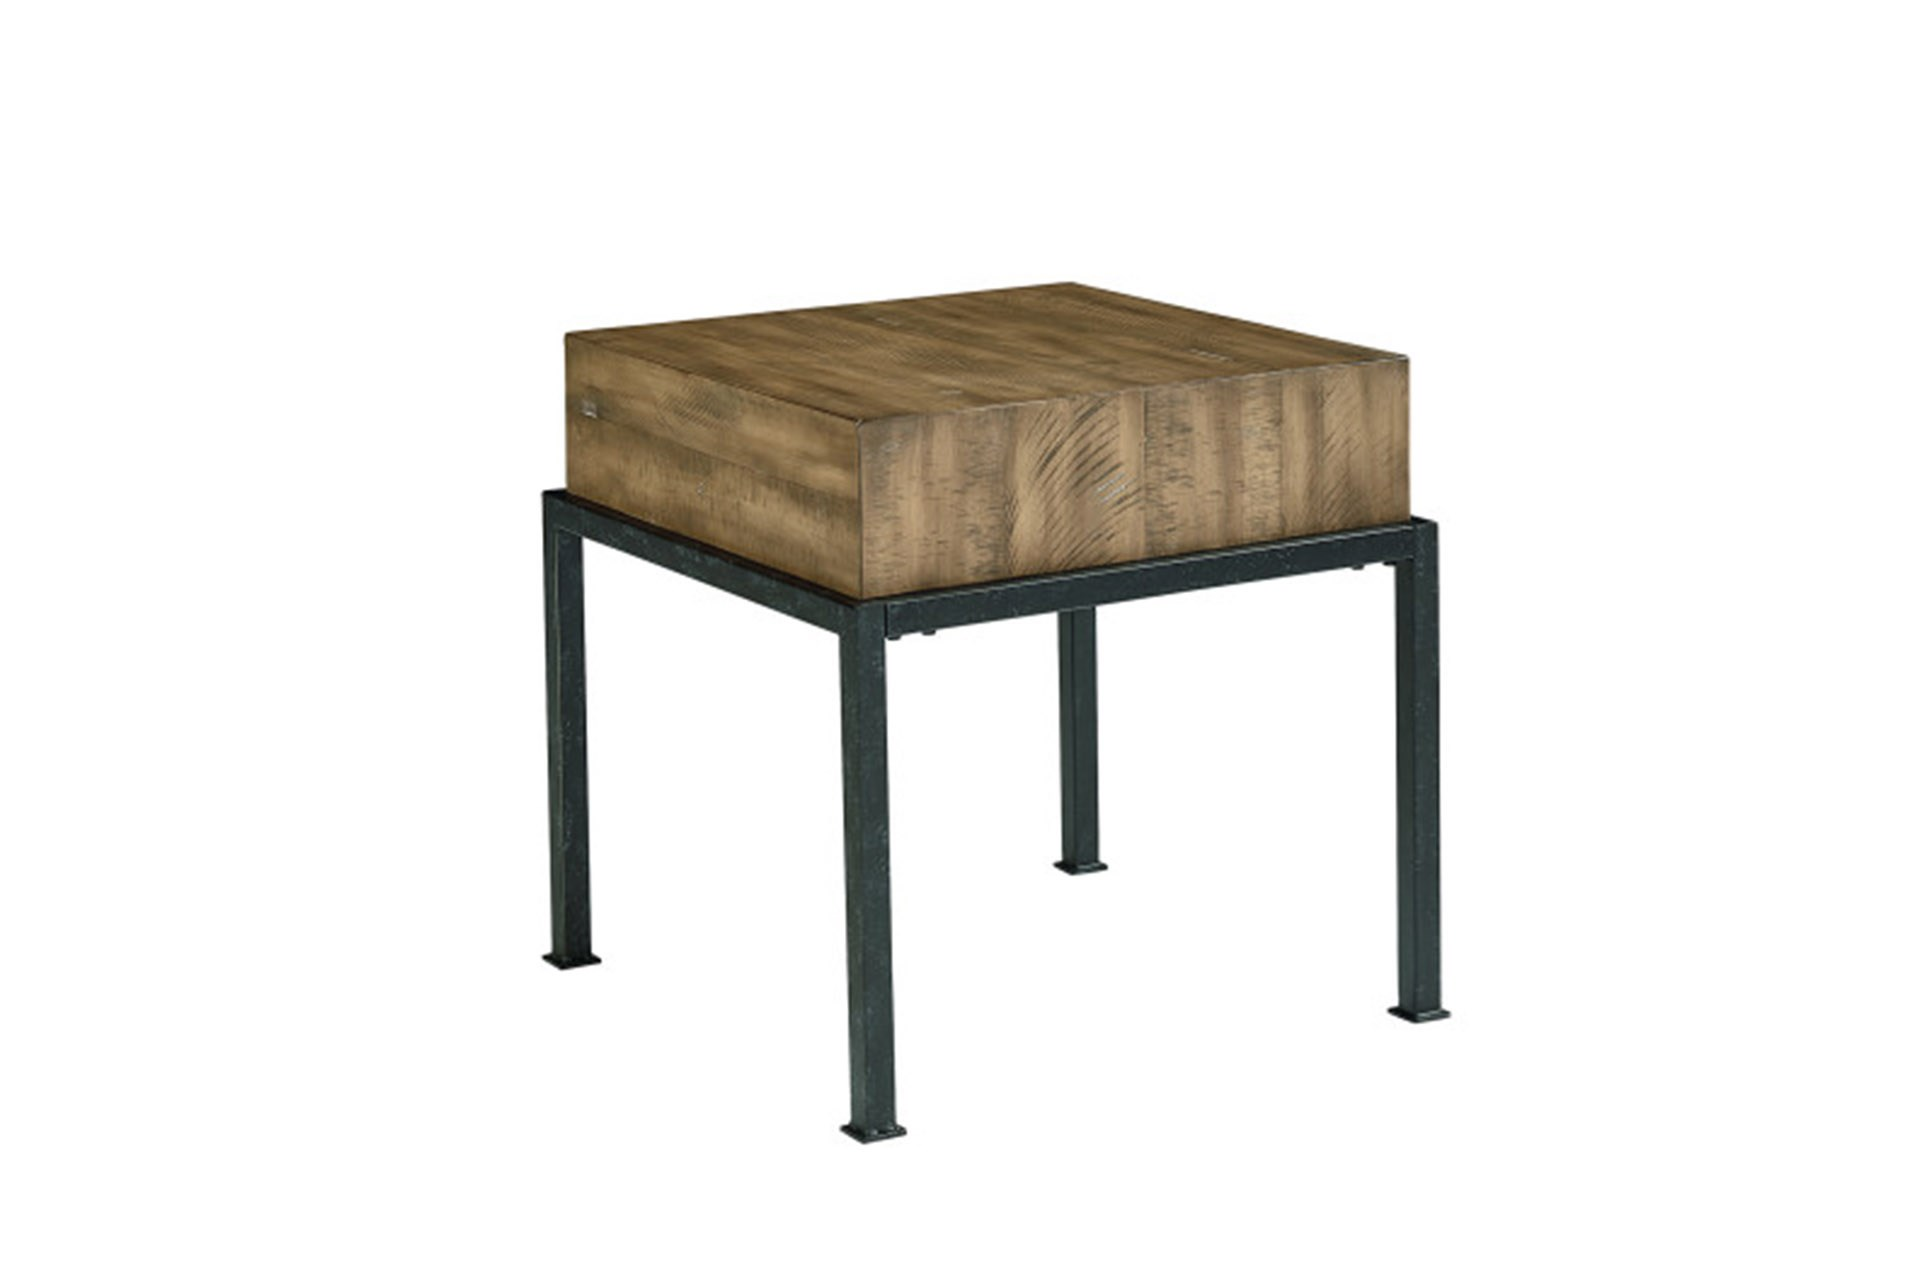 Magnolia Home Butcher Block End Table By Joanna Gaines Qty 1 Has Been Successfully Added To Your Cart